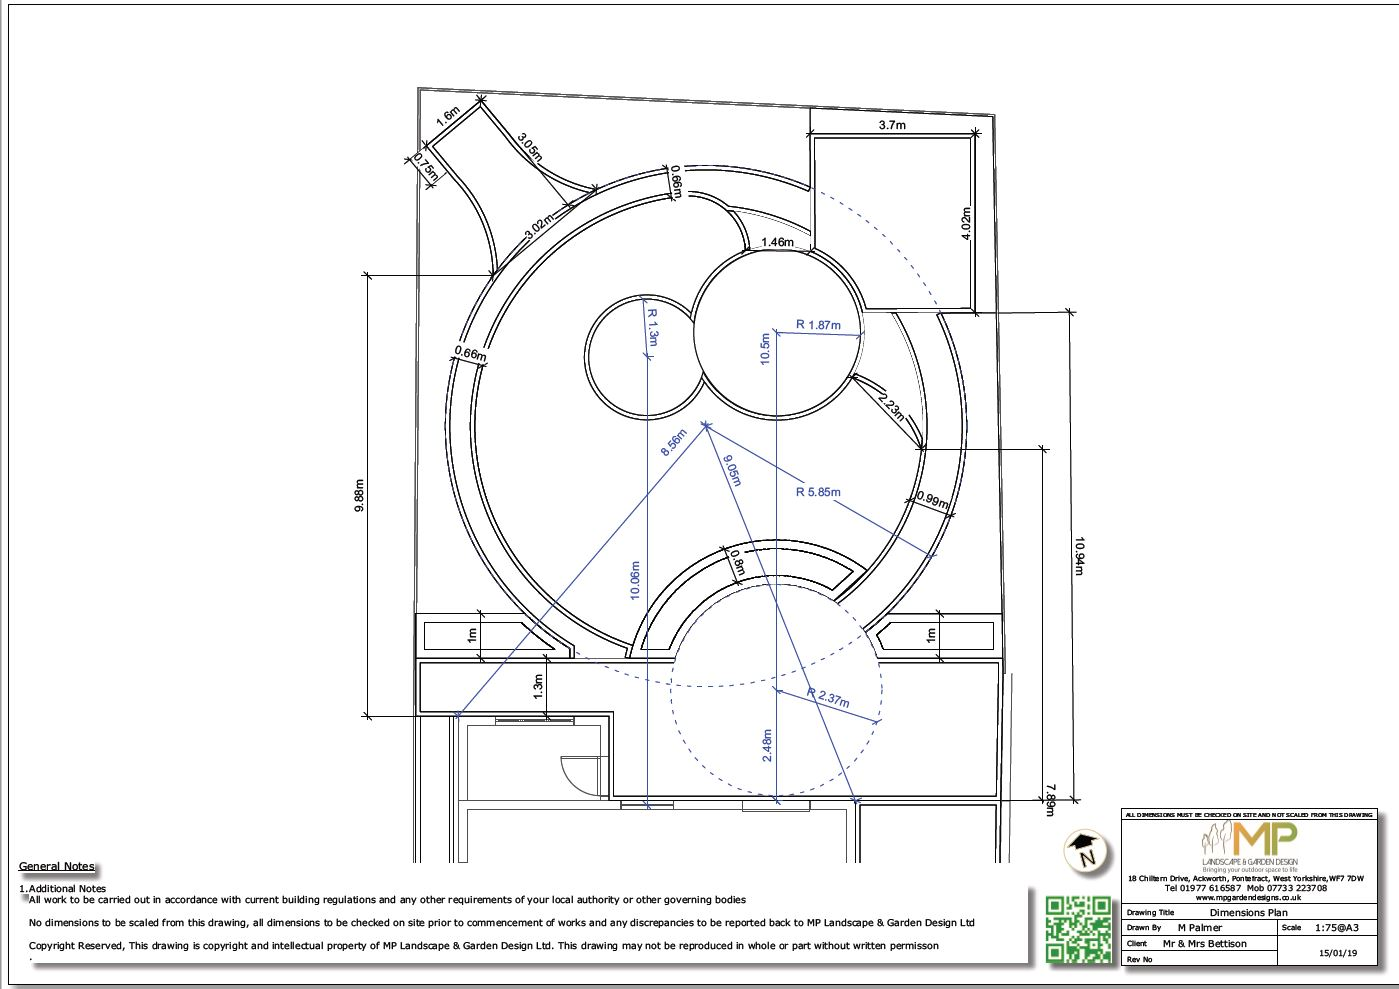 Dimensions plans for a rear garden in Wakefield.